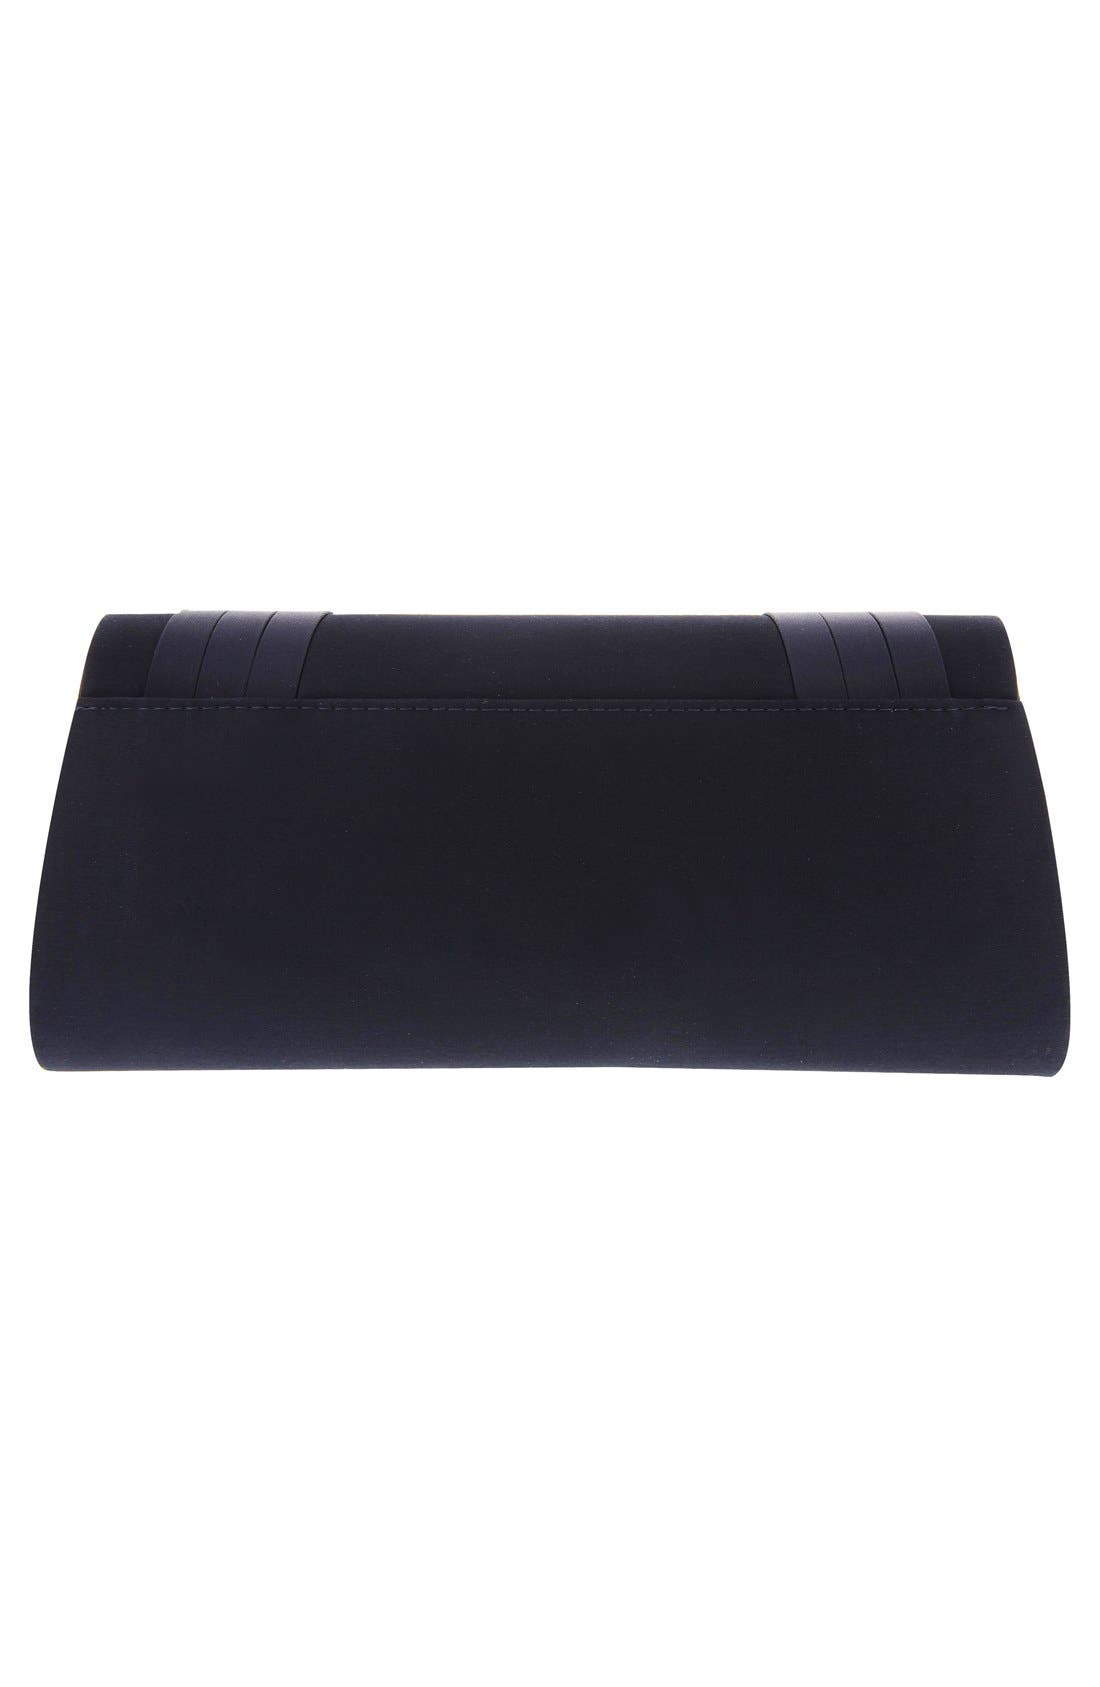 Avis Pleated Classic Clutch,                             Alternate thumbnail 8, color,                             NAVY NOBLE SATIN